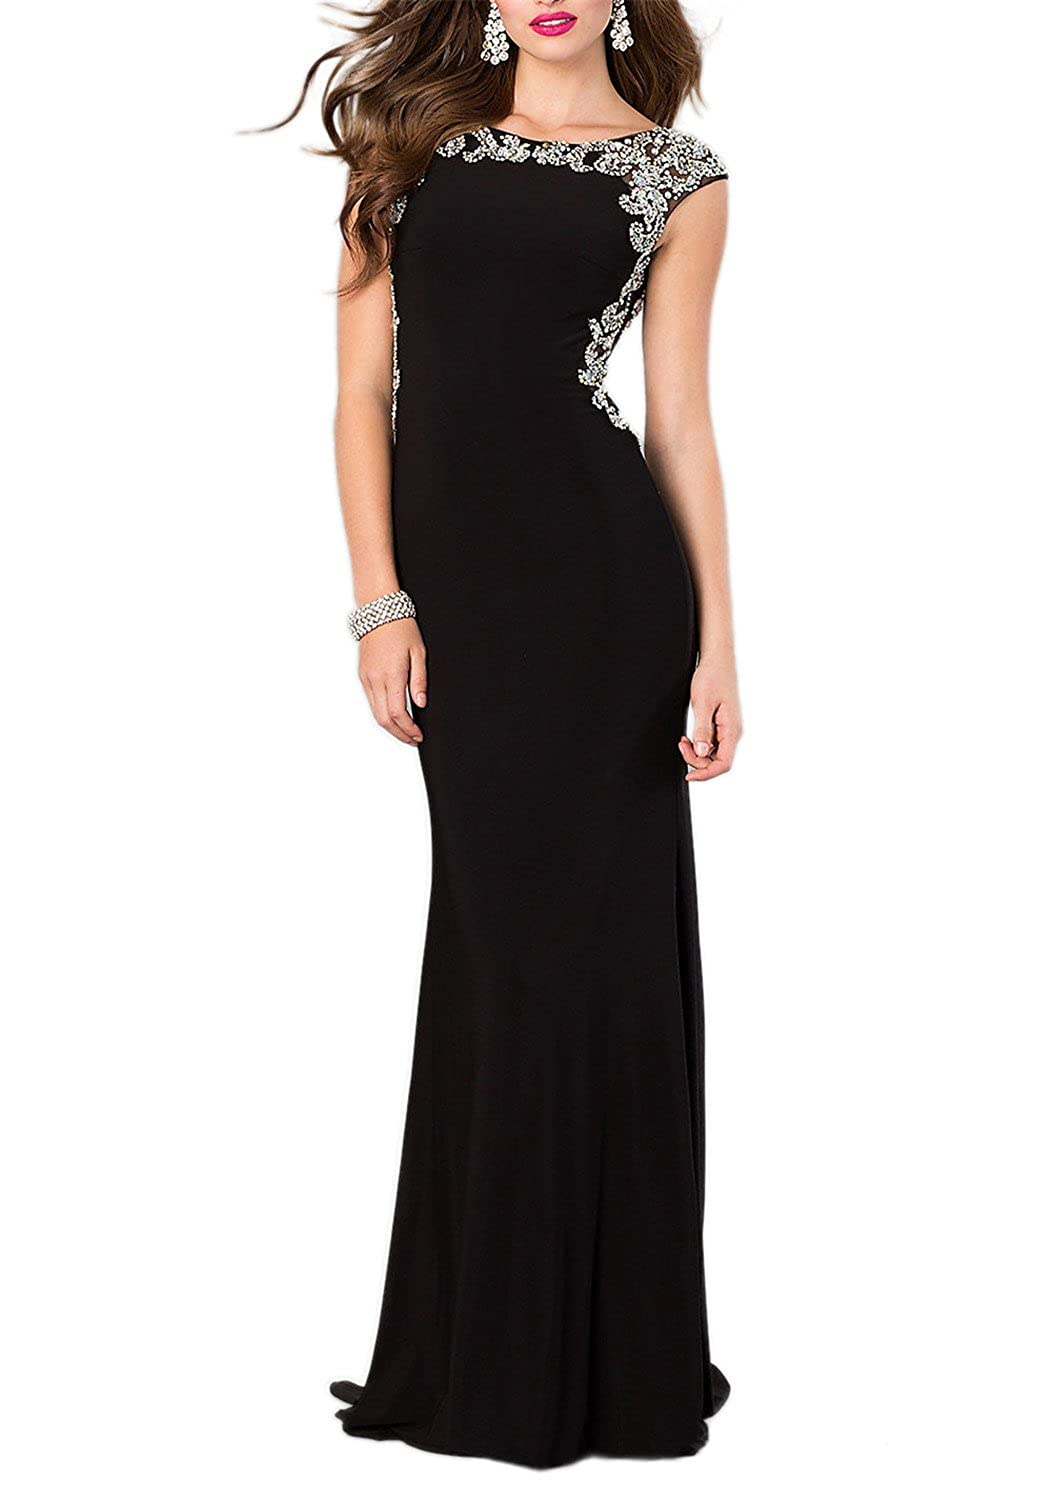 Amazon.com: Miss Chics Long Prom Dresses for Women Evening Gowns ...